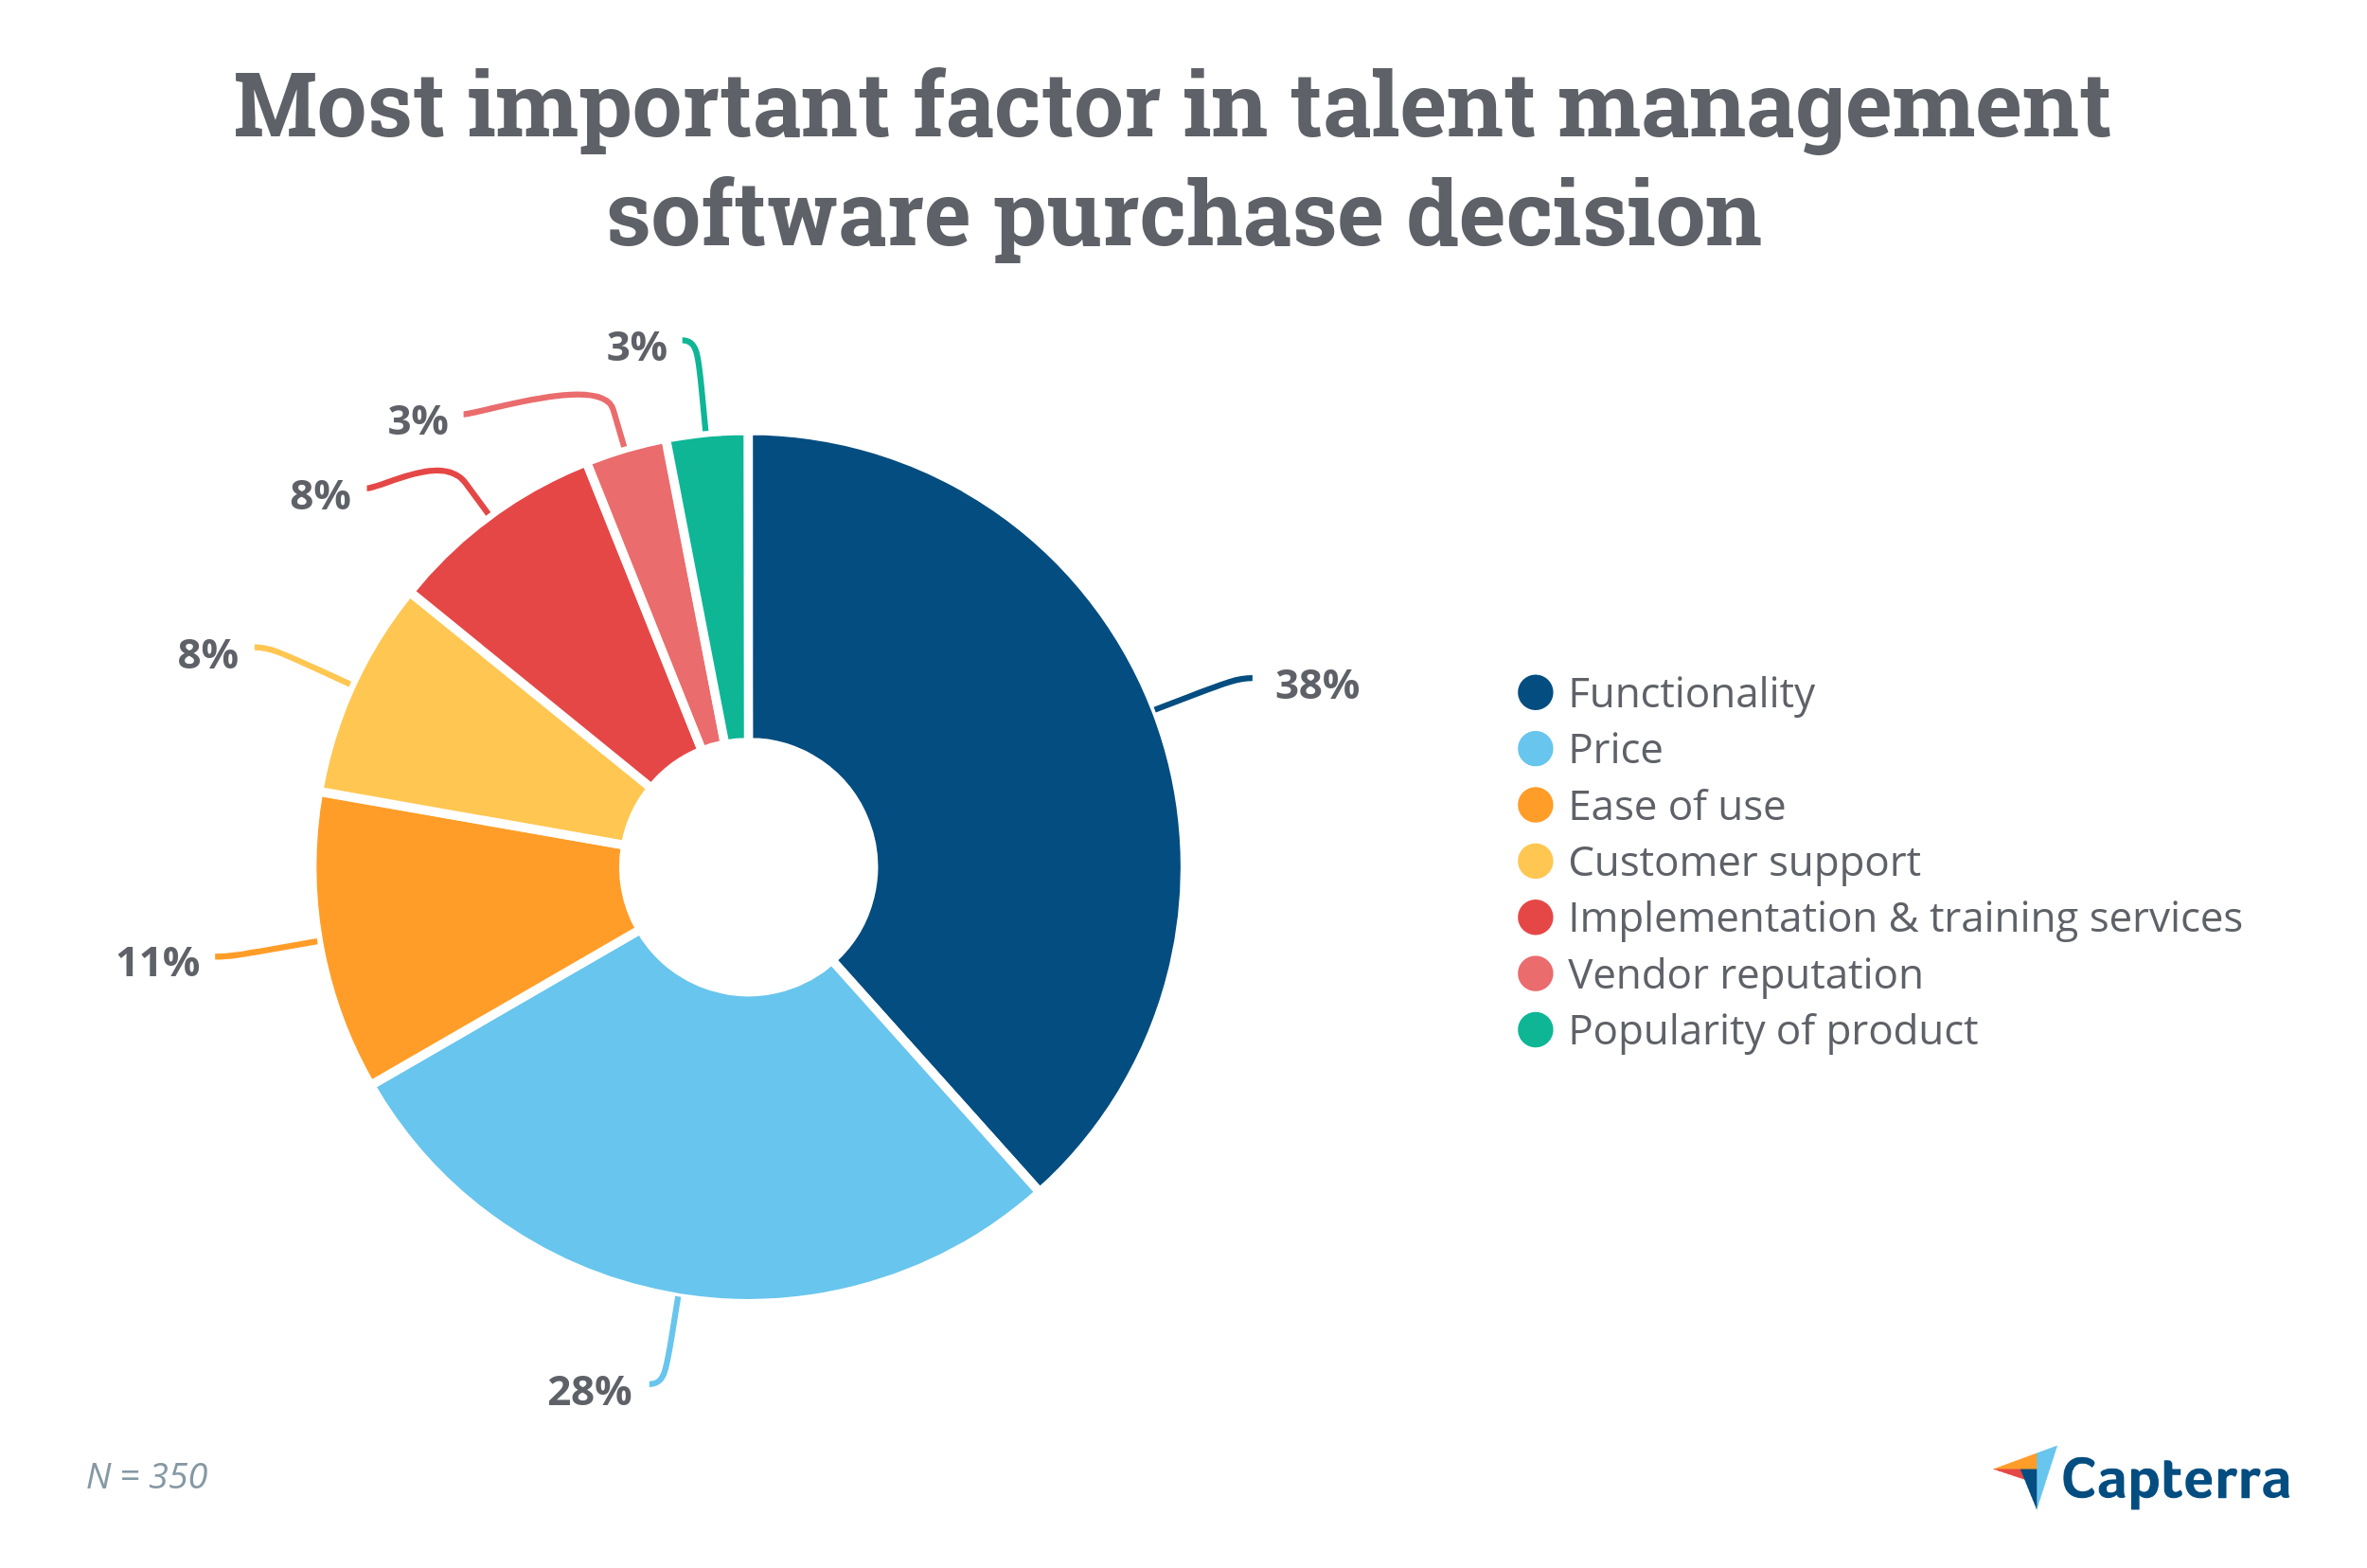 Most important factor in talent management software purchase decision